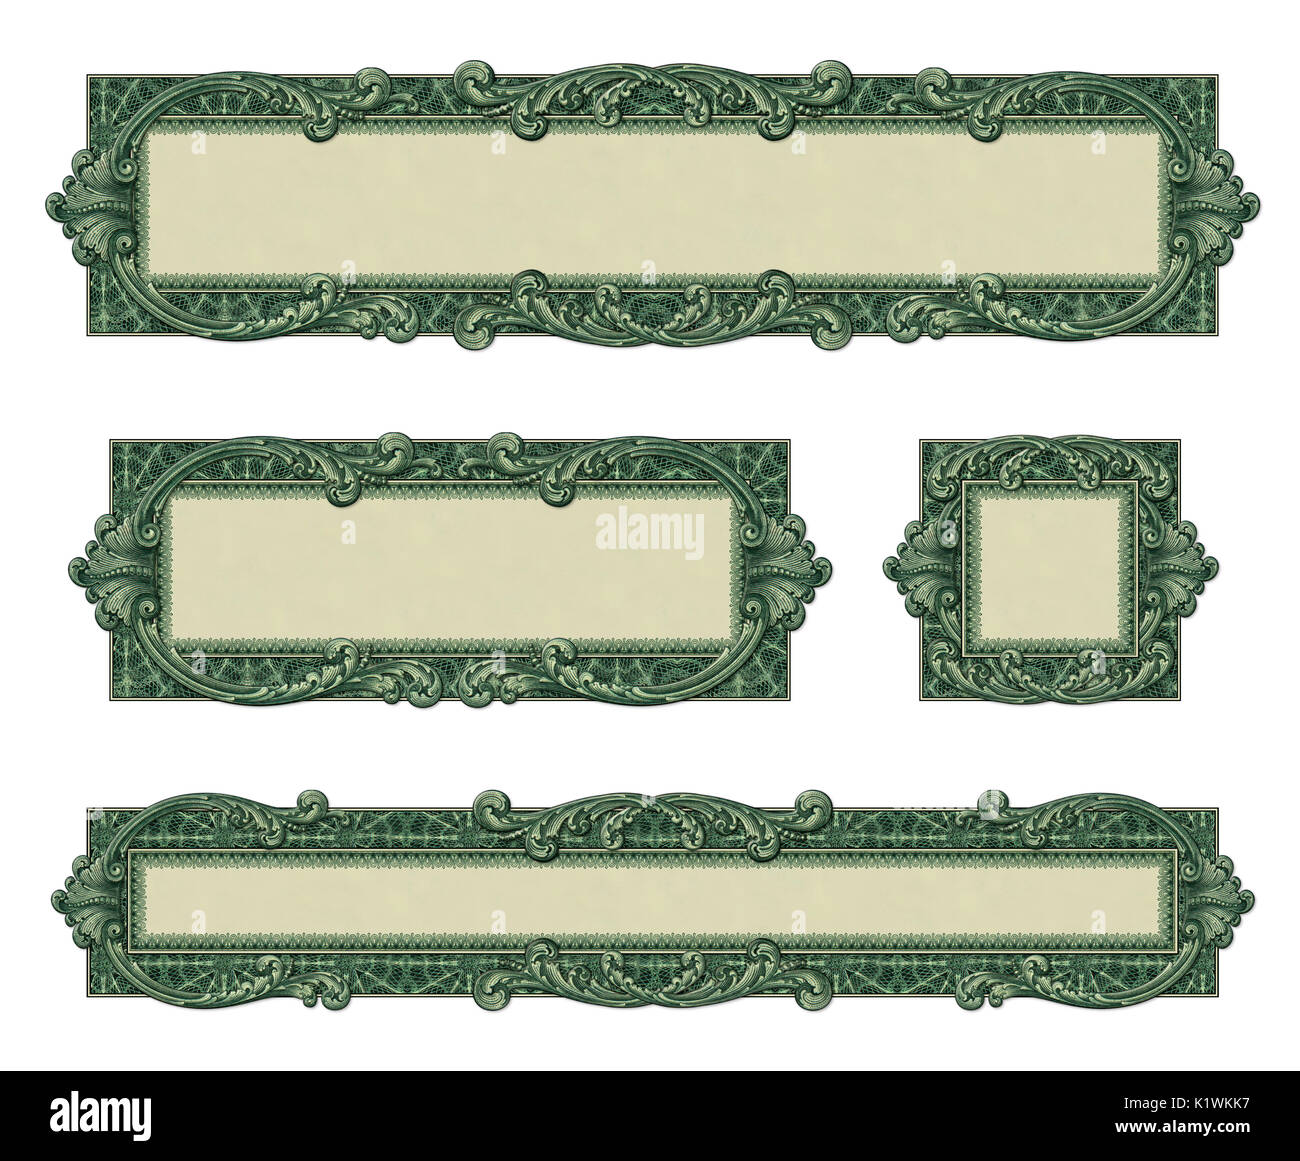 Dollar Frames Stock Photos & Dollar Frames Stock Images - Alamy